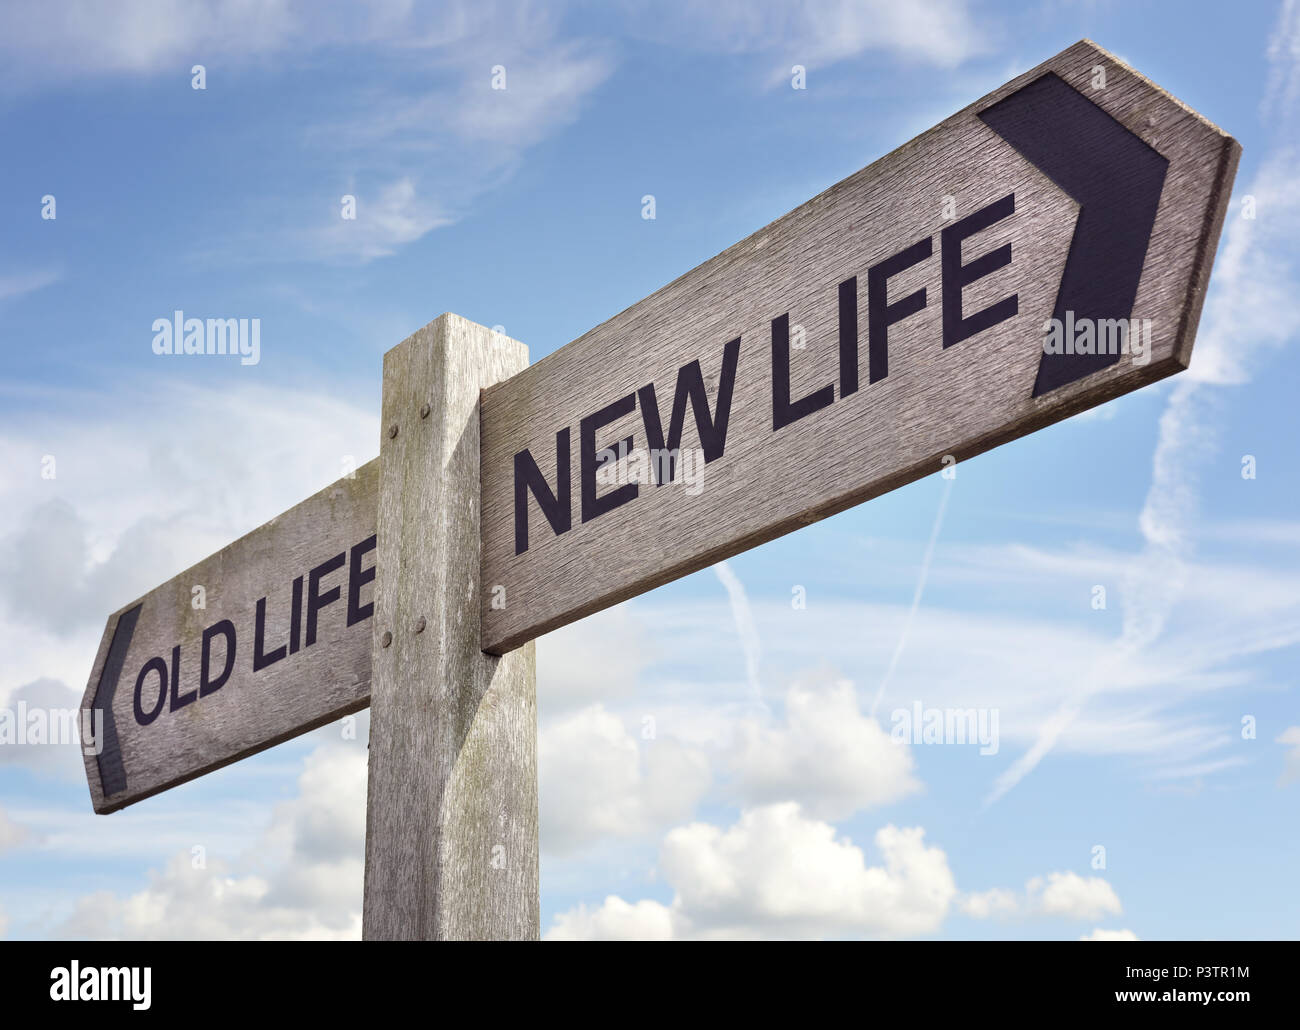 New life concept for fresh start, new year resolution, dieting and healthy lifestyle - Stock Image